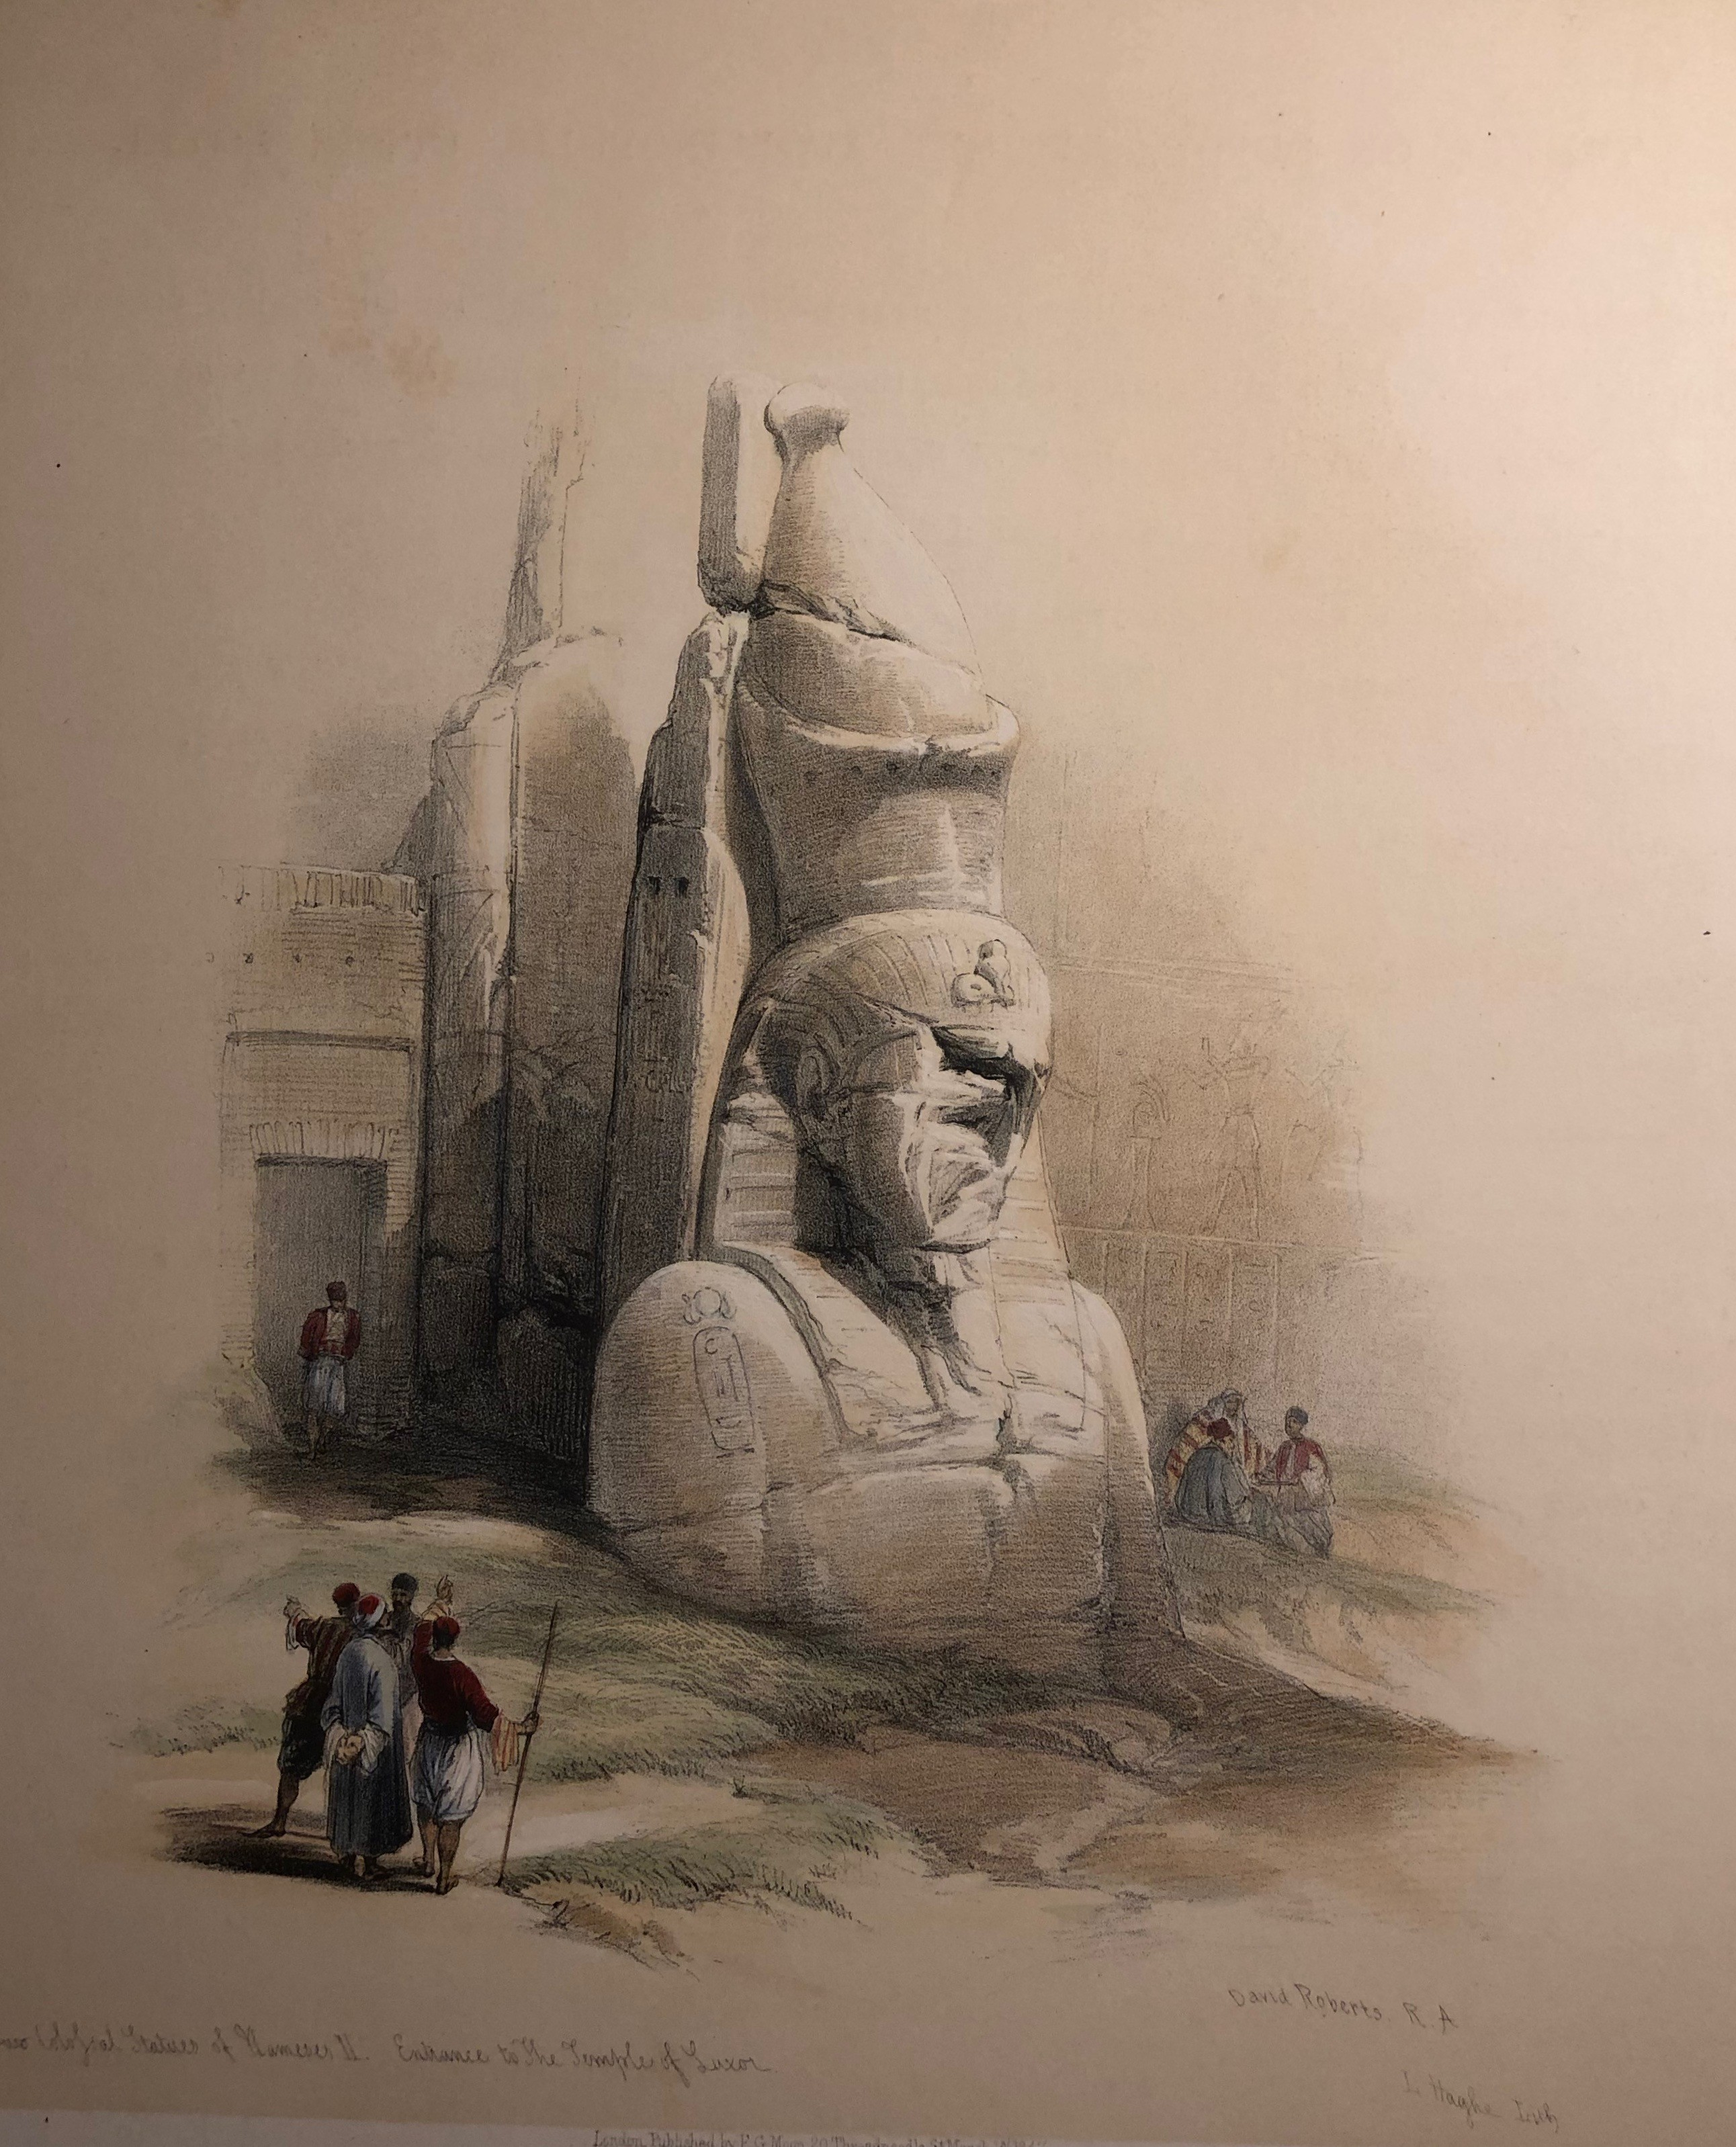 A Colossal Statue at the Entrance to the Temple of Luxor